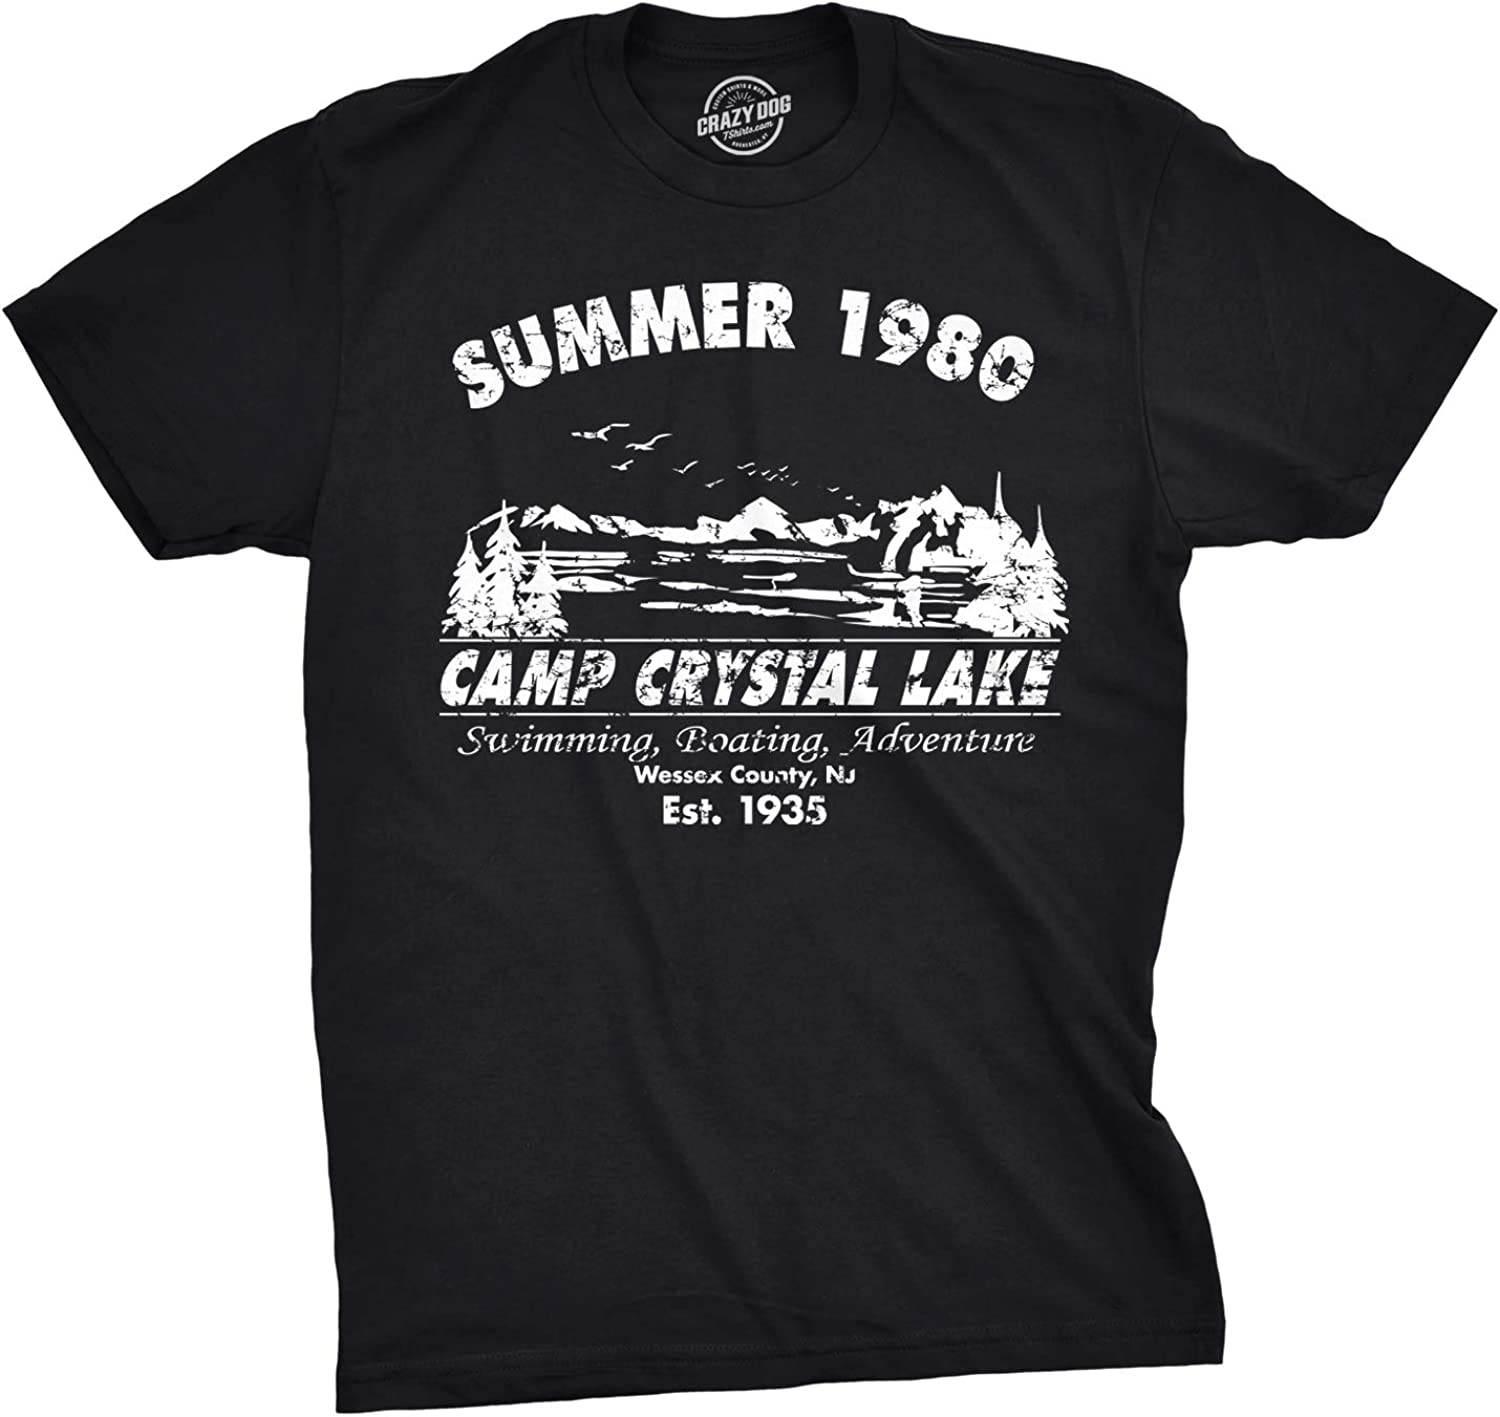 Mens Summer 1980 Men Funny T Shirt Graphic Camping Vintage Cool 80s Novelty Tees